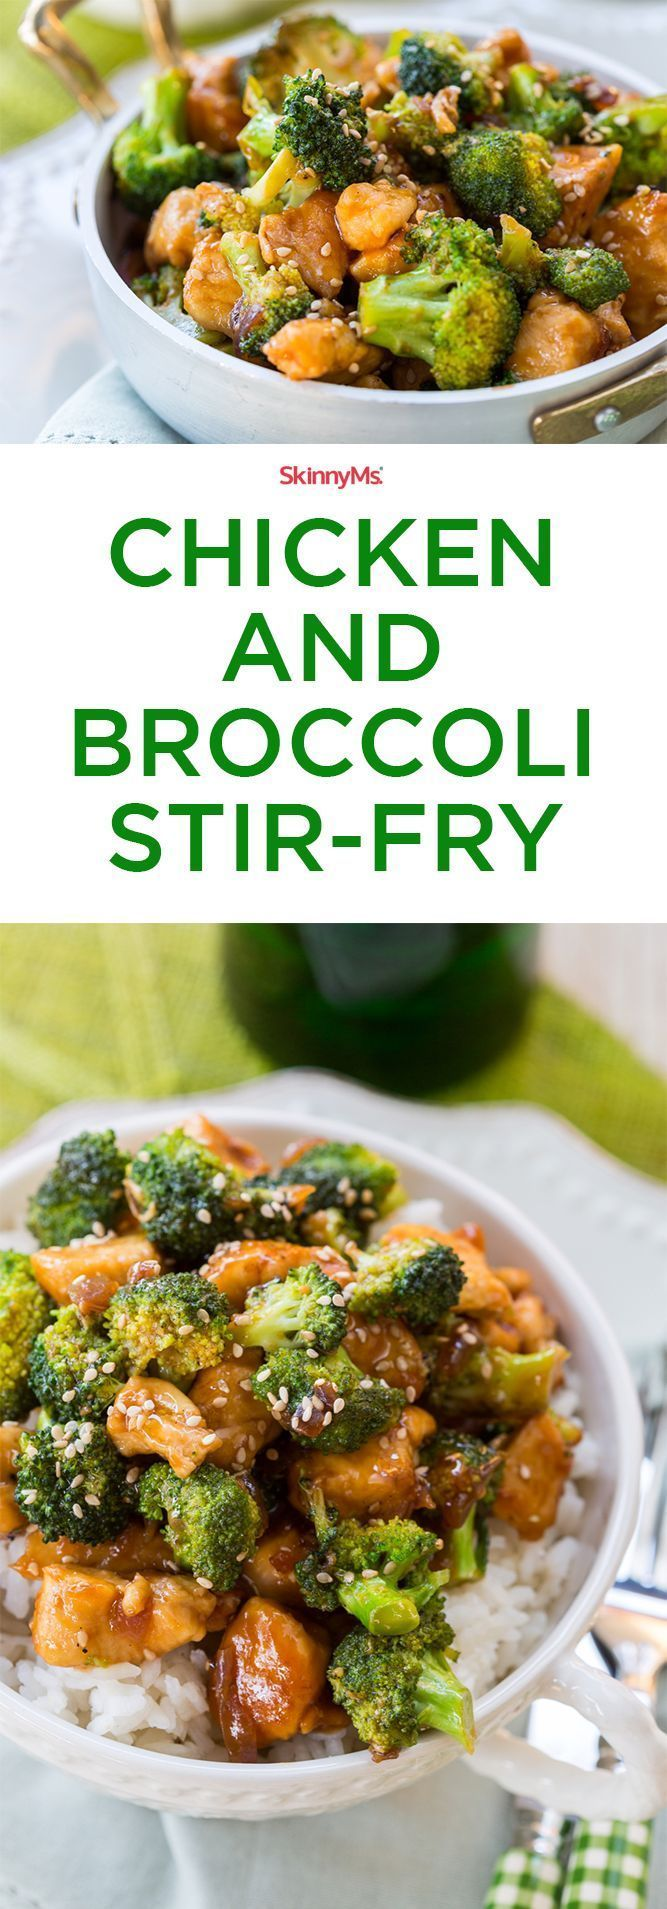 Our Chicken & Broccoli Stir-Fry is an excellent dinner option. Try it tonight! #cleaneating #healthyeats #menuplanning